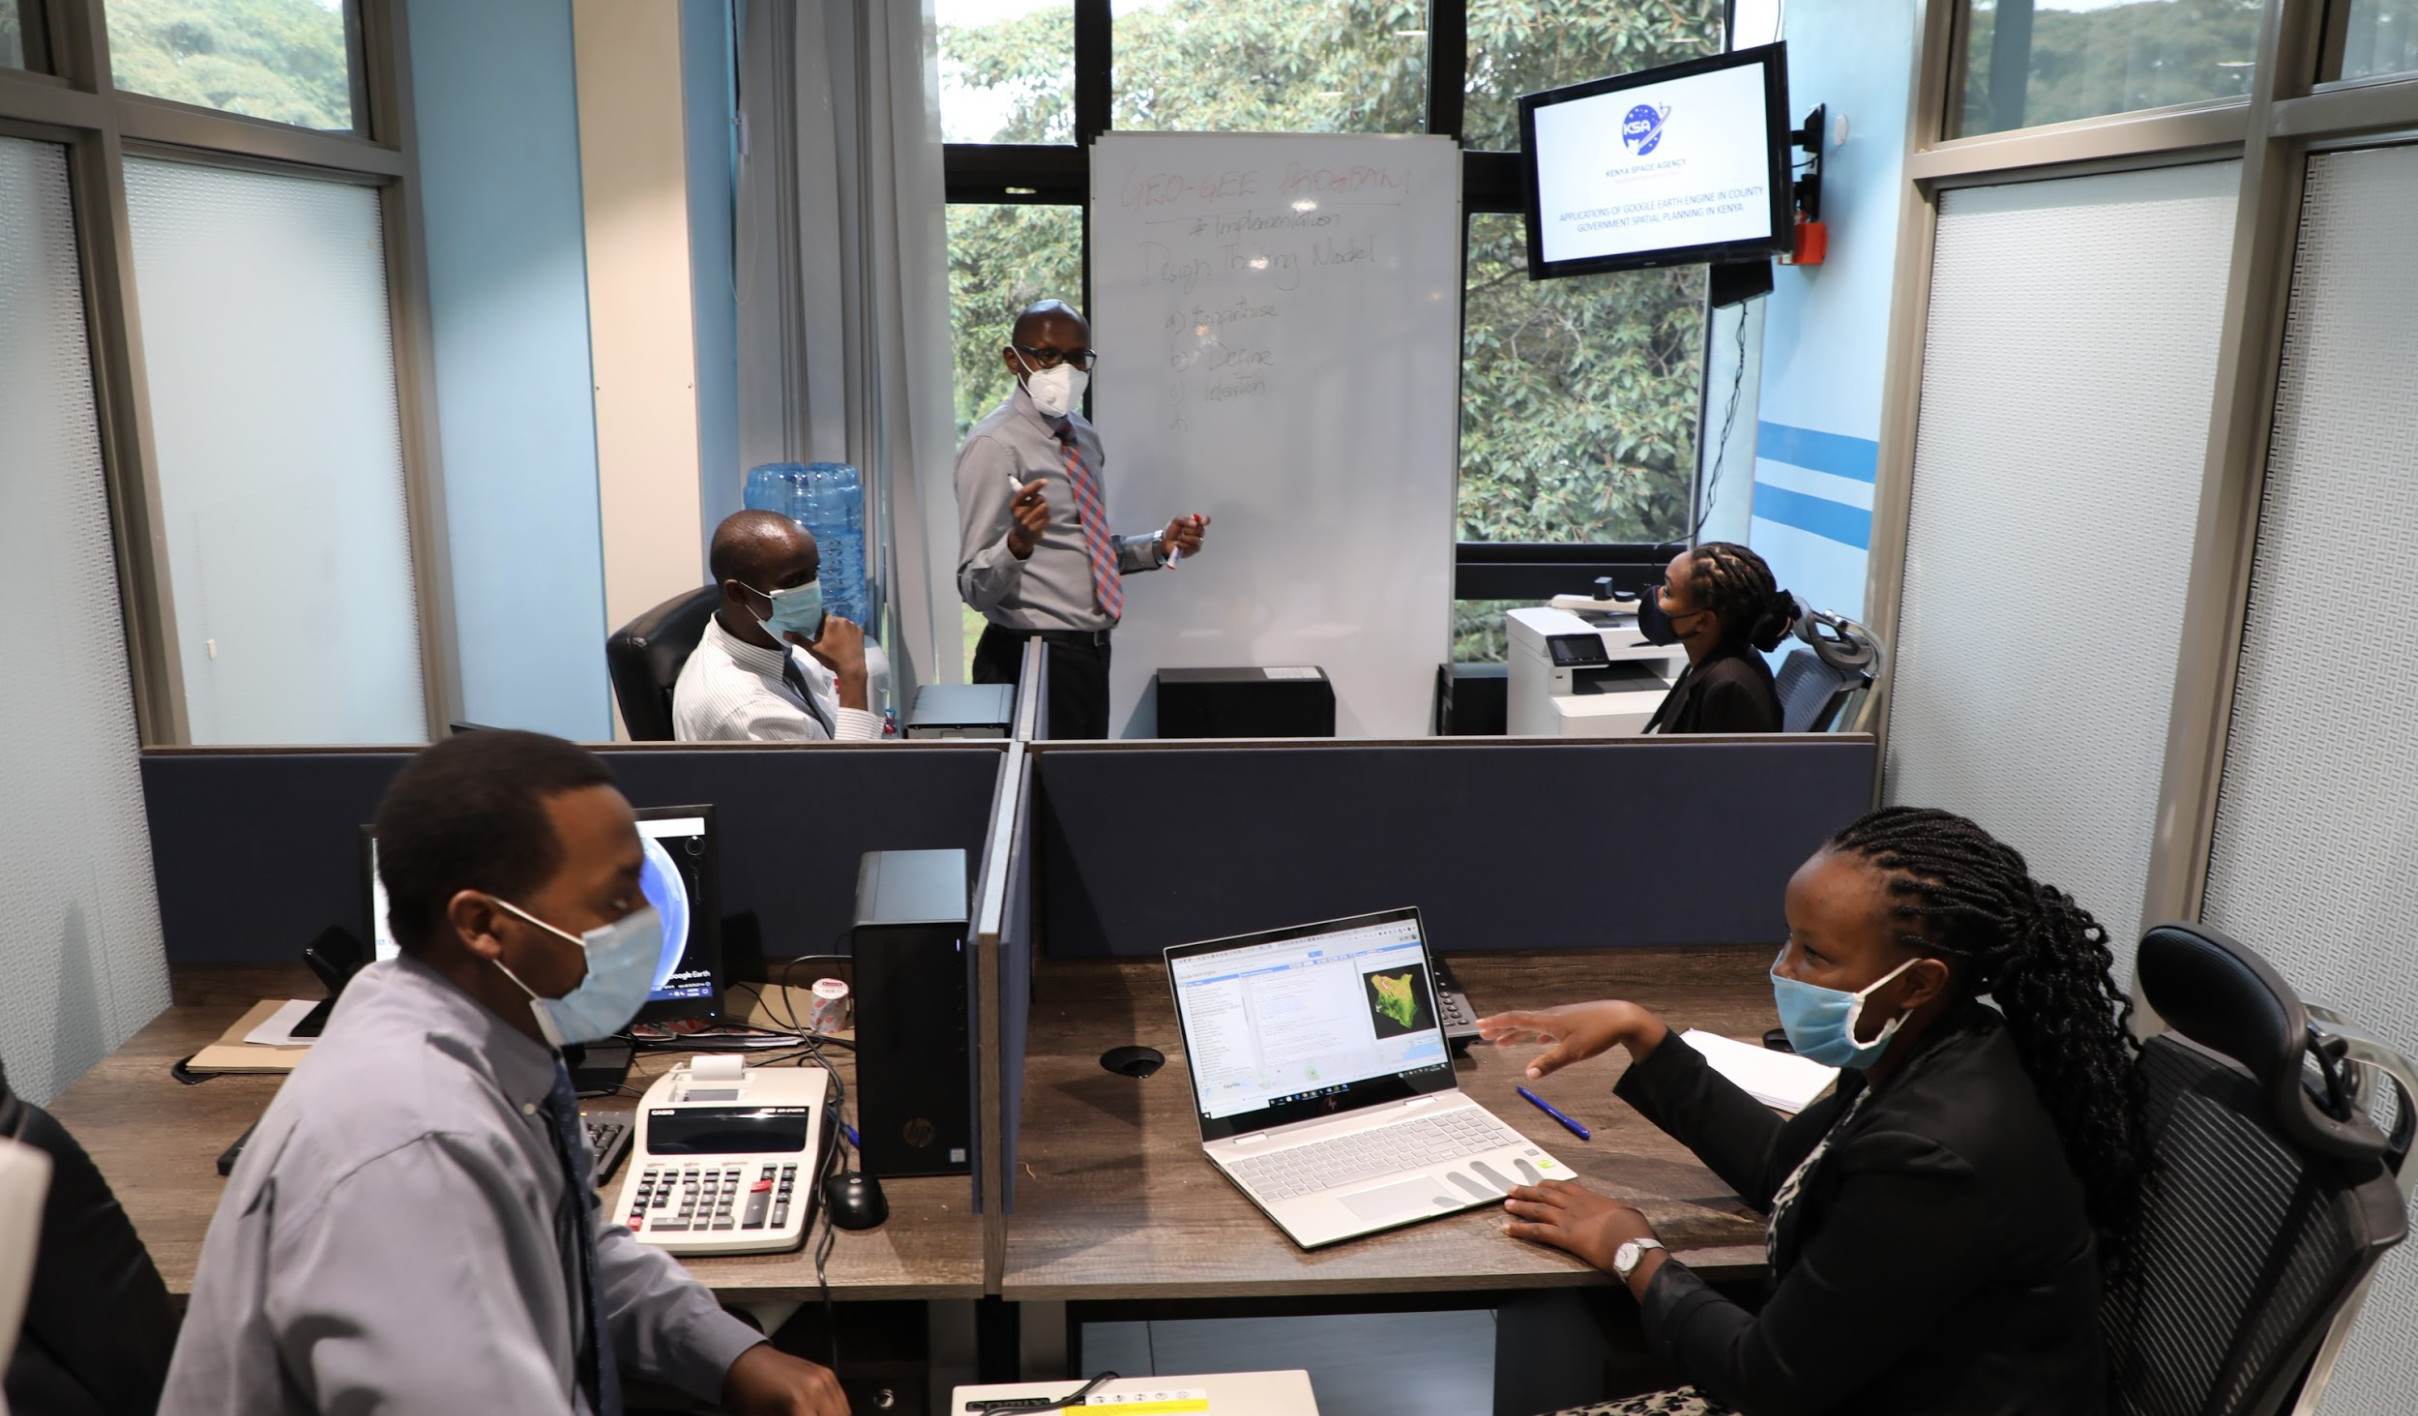 Kenya Space Agency Project team led by Mr. Charles Mwangi (standing) planning the implementation of the GEO-GEE unlimited license award.